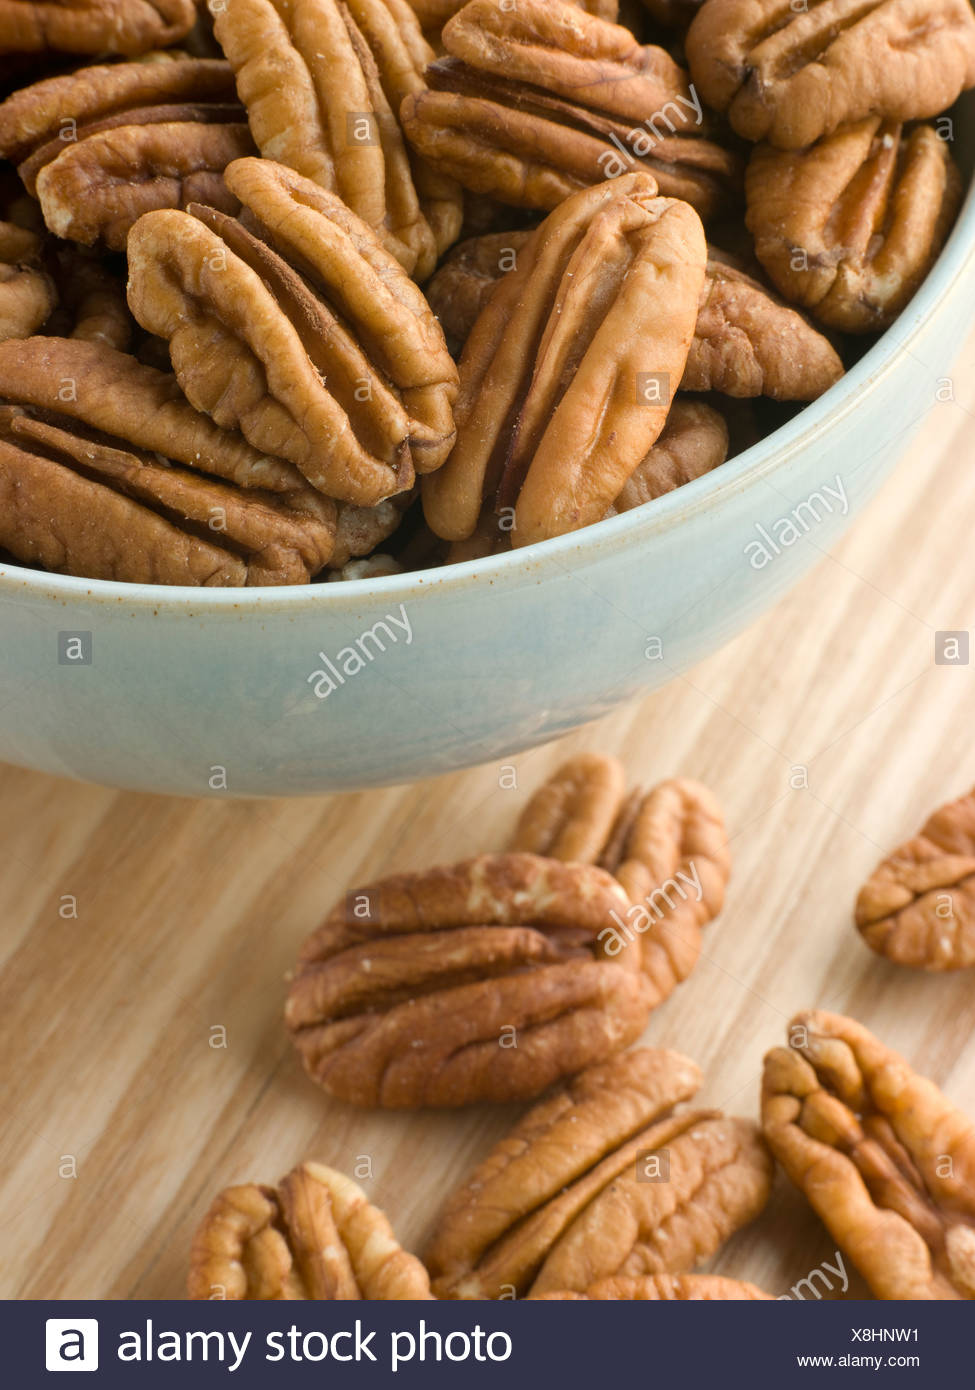 Bowl of Pecan Nuts - Stock Image